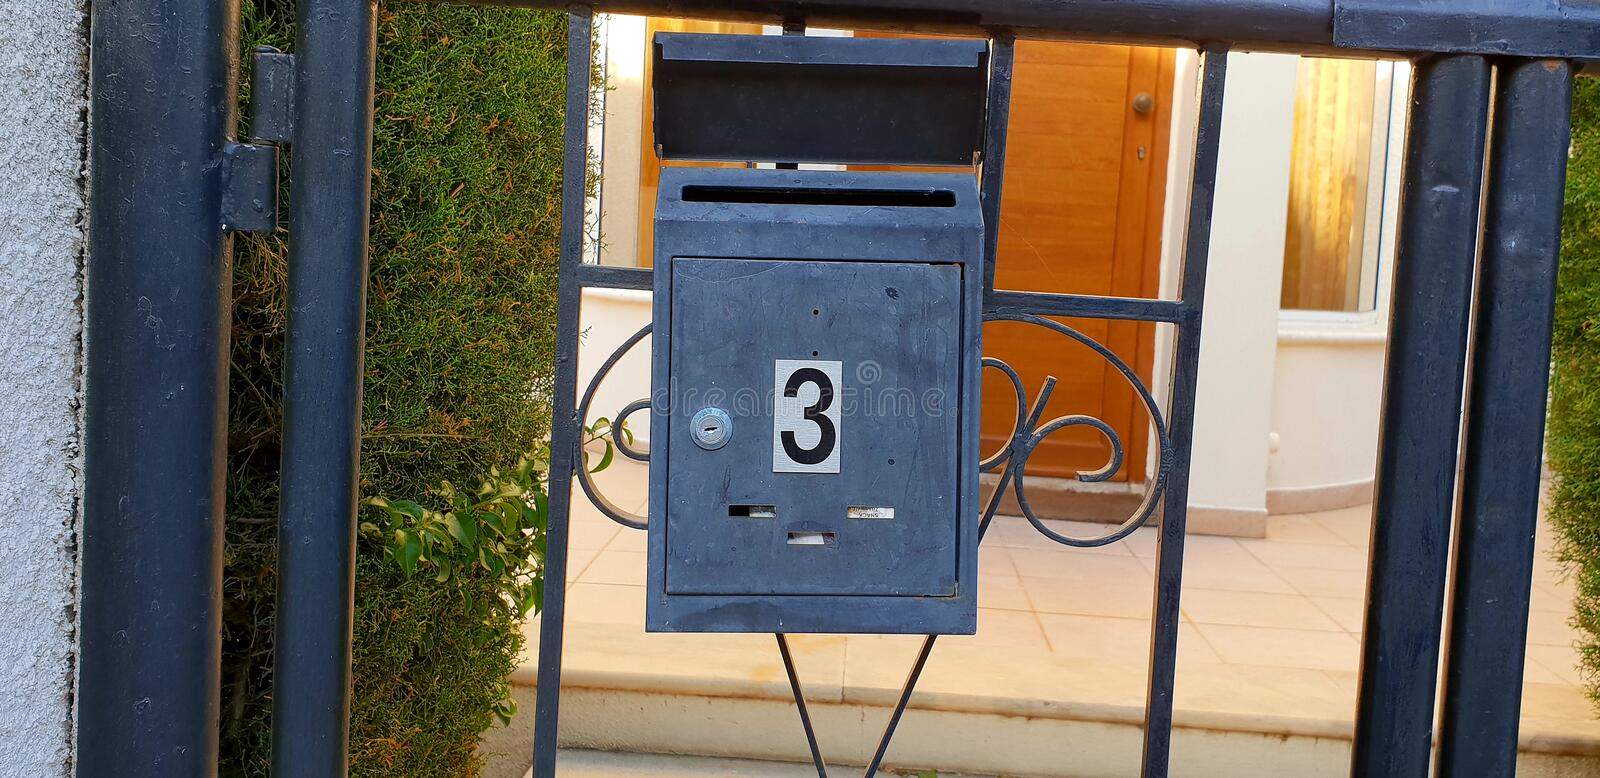 postbox photos libres de droits